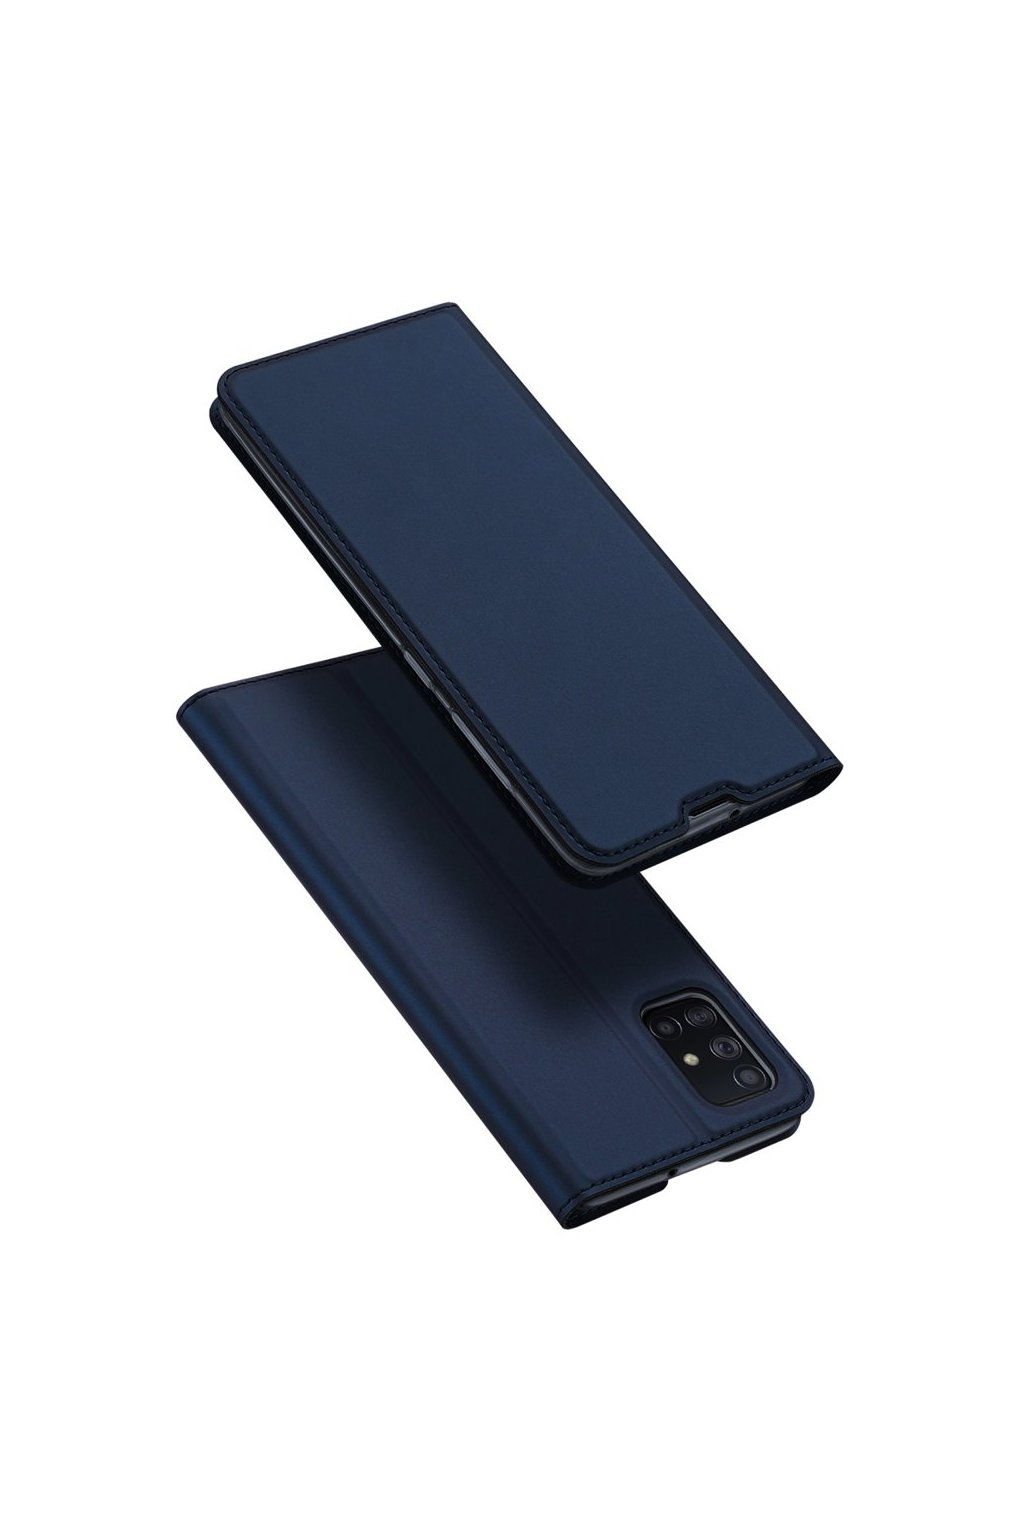 eng pl DUX DUCIS Skin Pro Bookcase type case for Samsung Galaxy A71 blue 56439 1